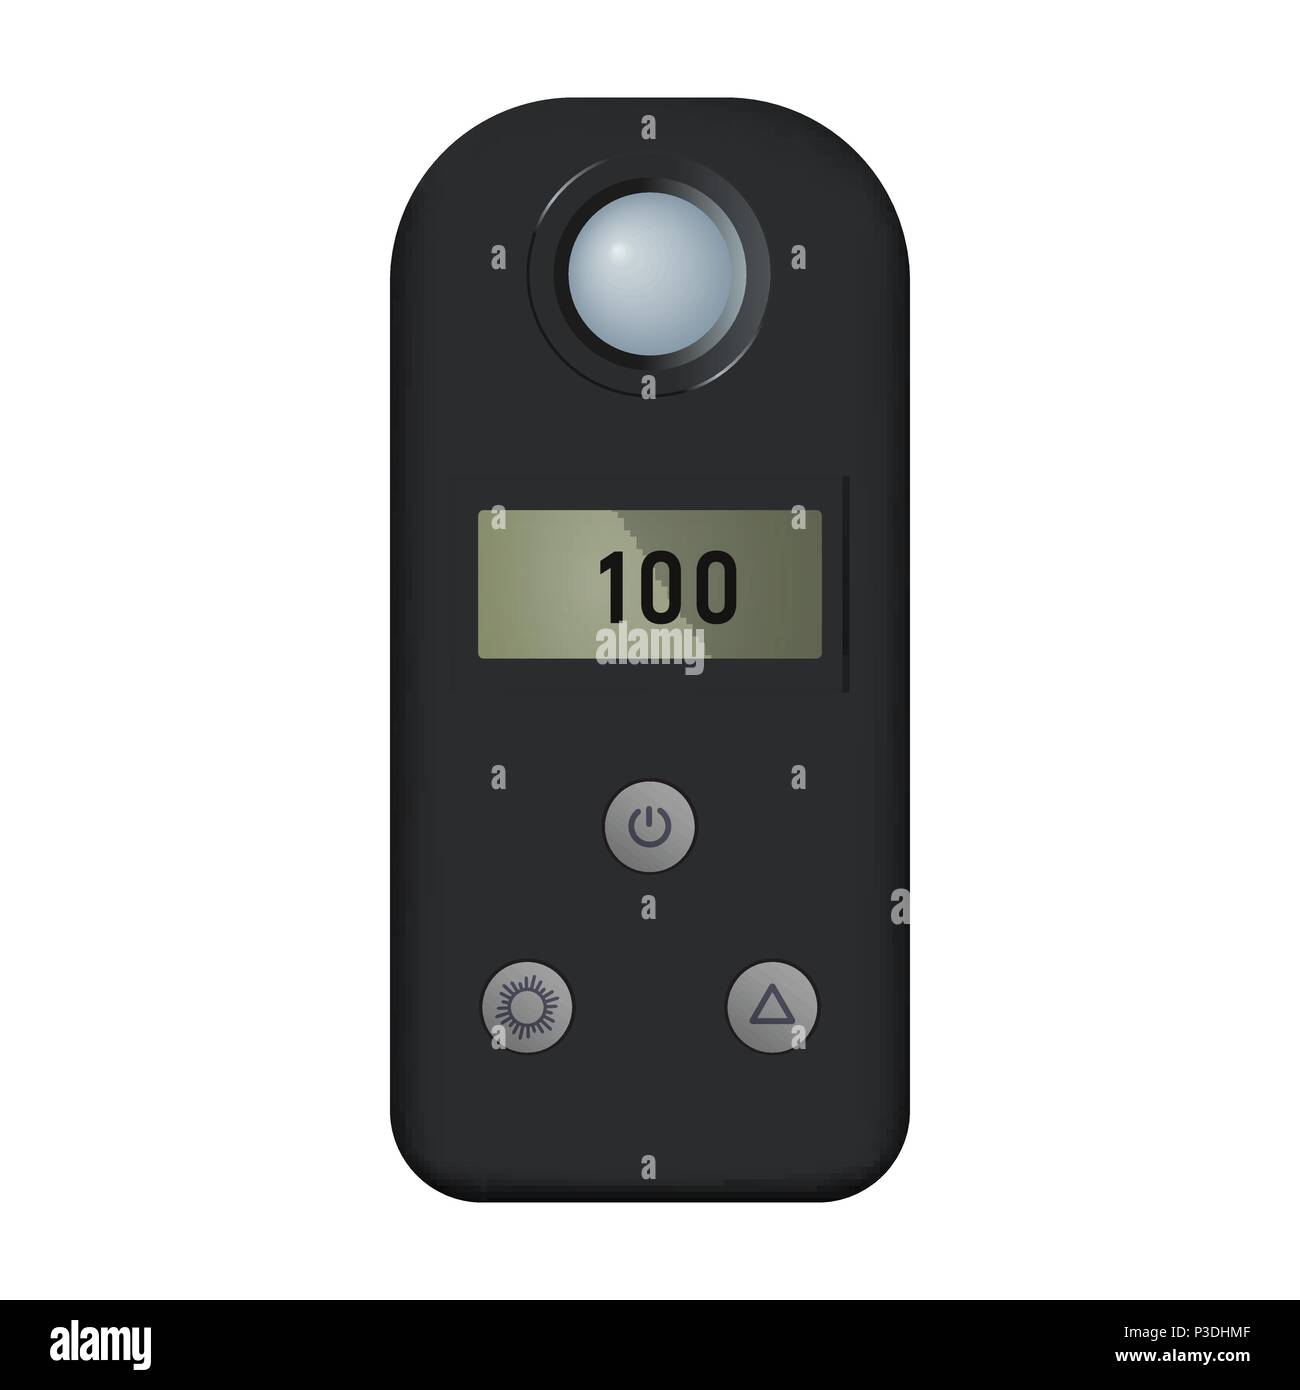 Light meter - Stock Image